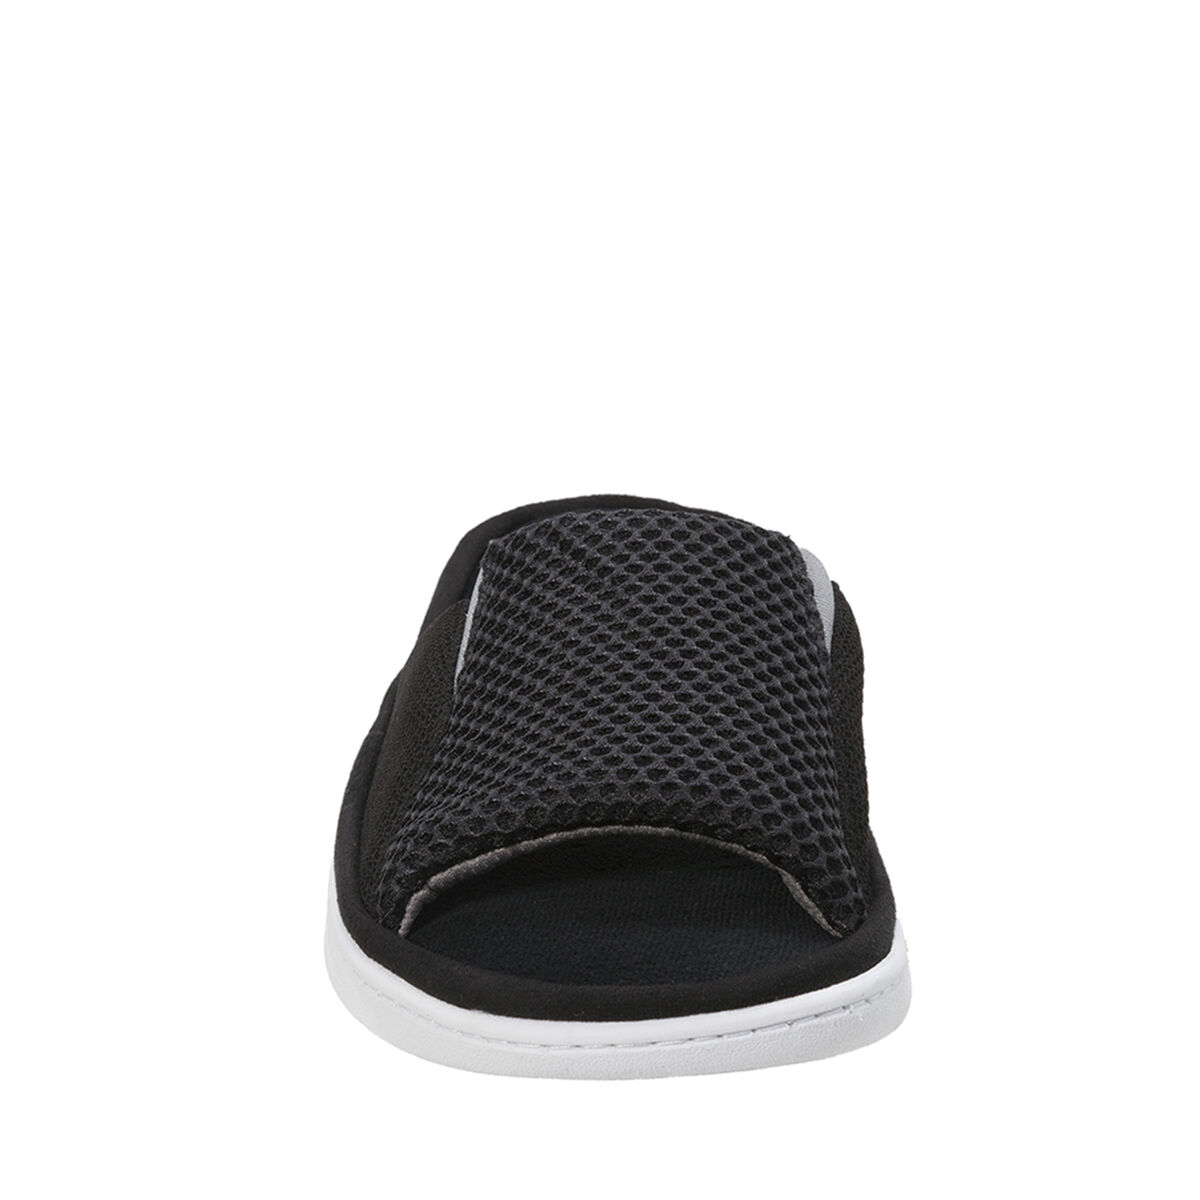 Men's Mixed Mesh Slide with Gore